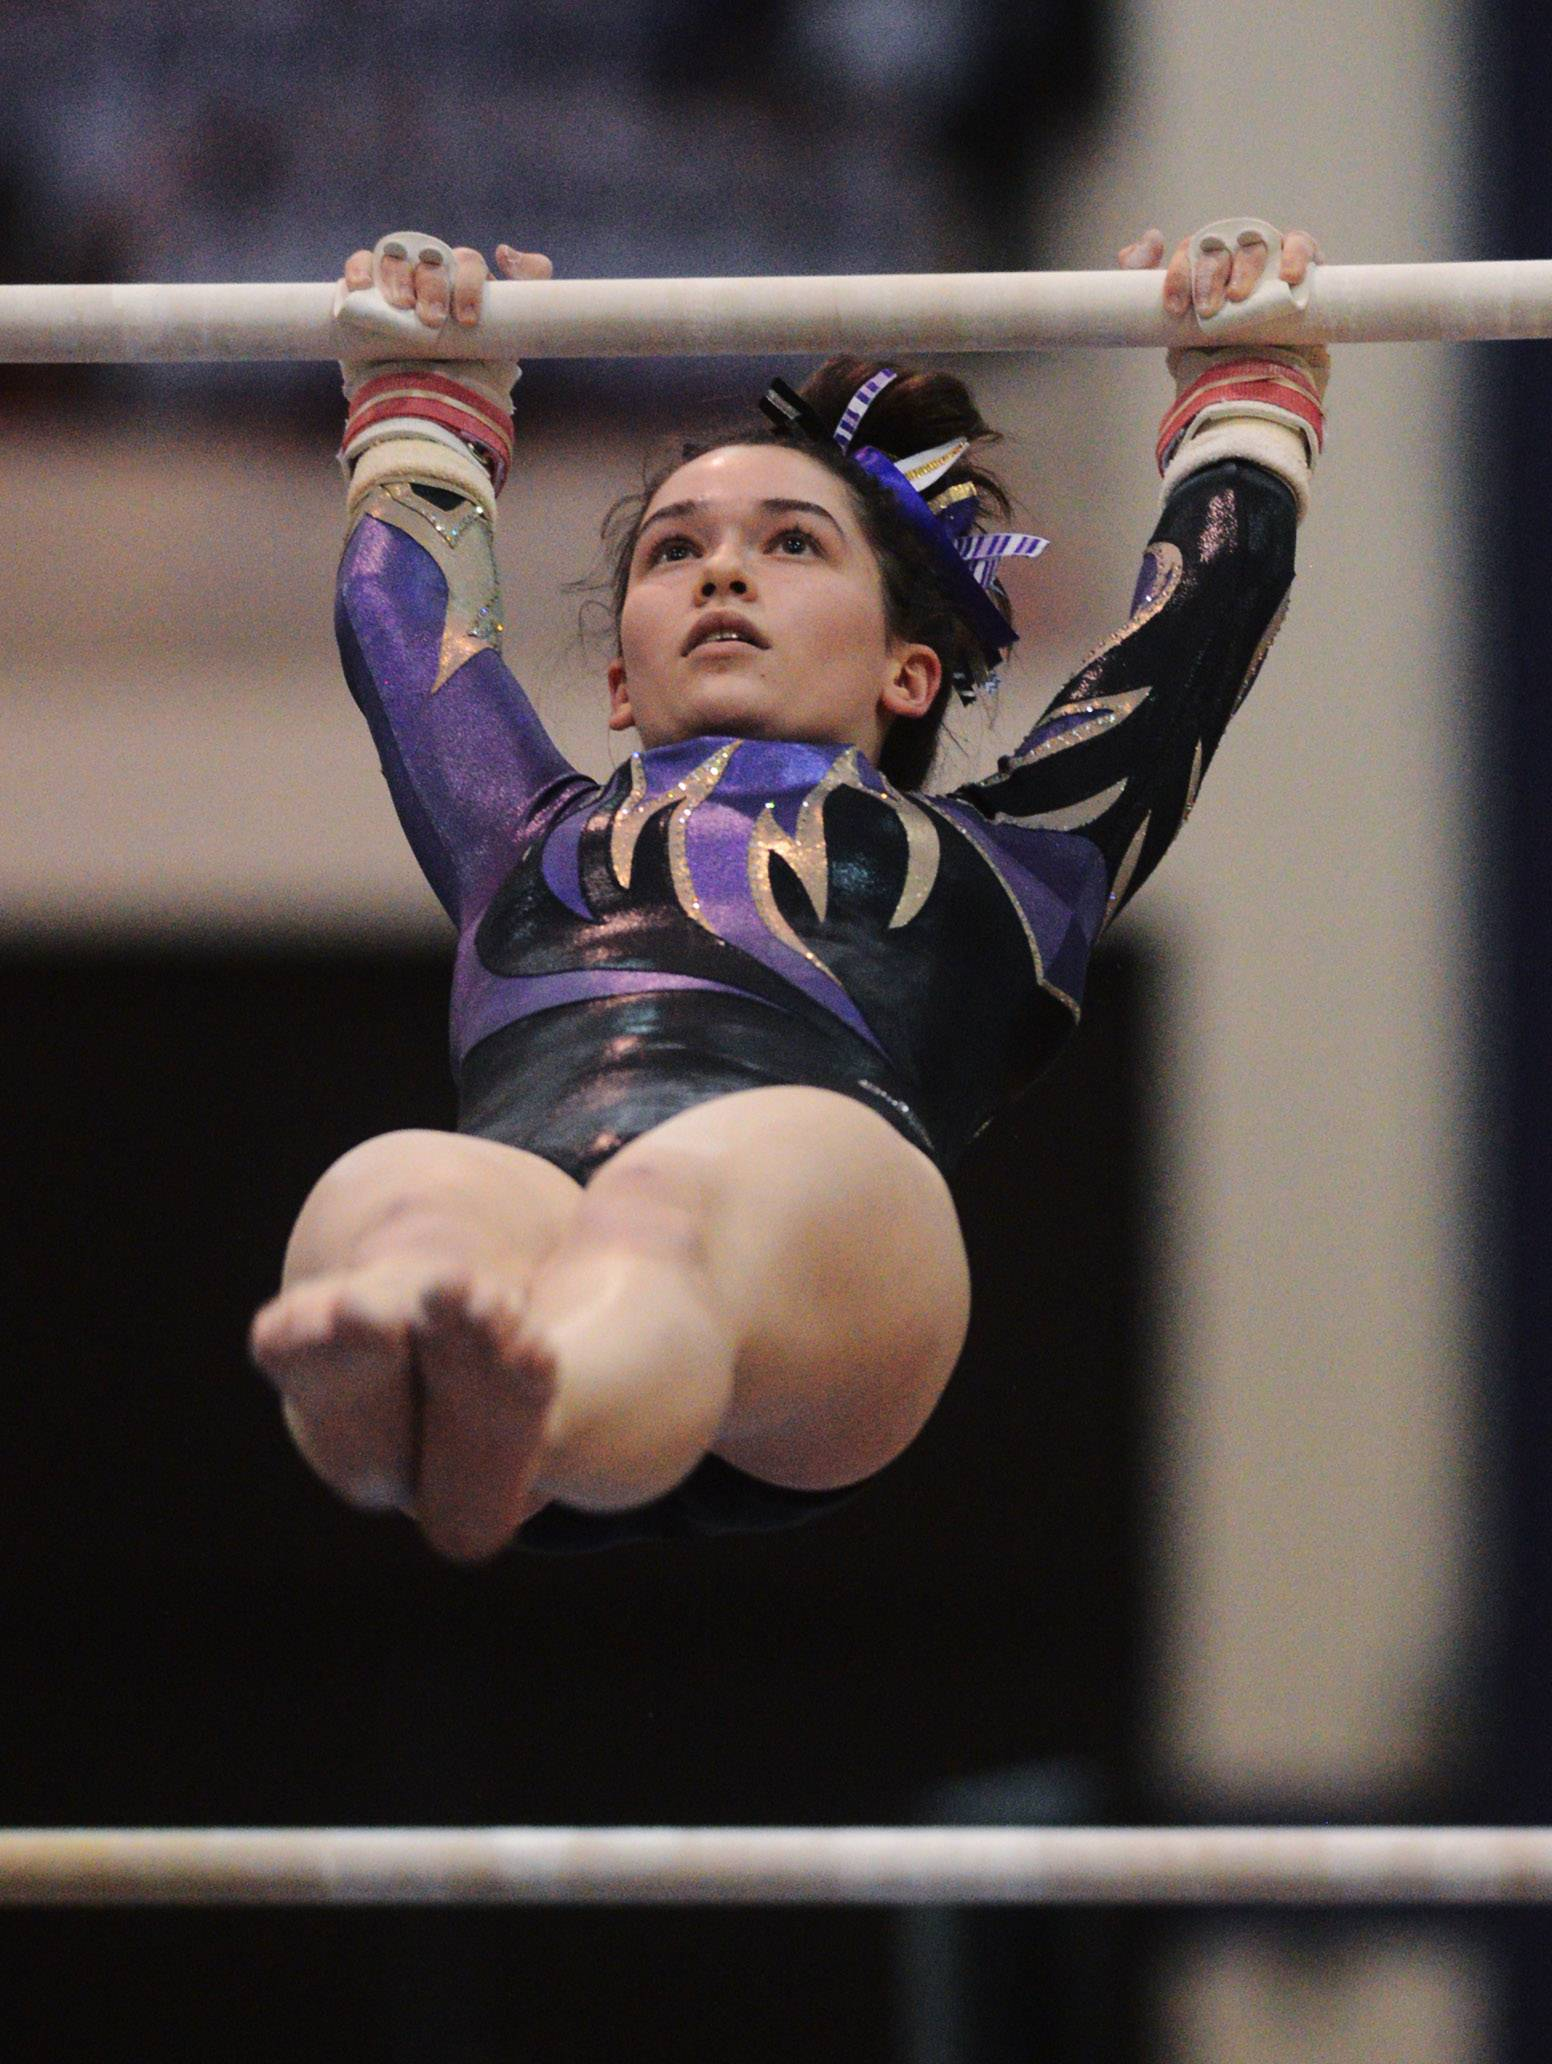 Rolling Meadows' Jenna Byrne competes on the uneven parallel bars during Wednesday's home gymnastics meet with Fremd and Prospect.